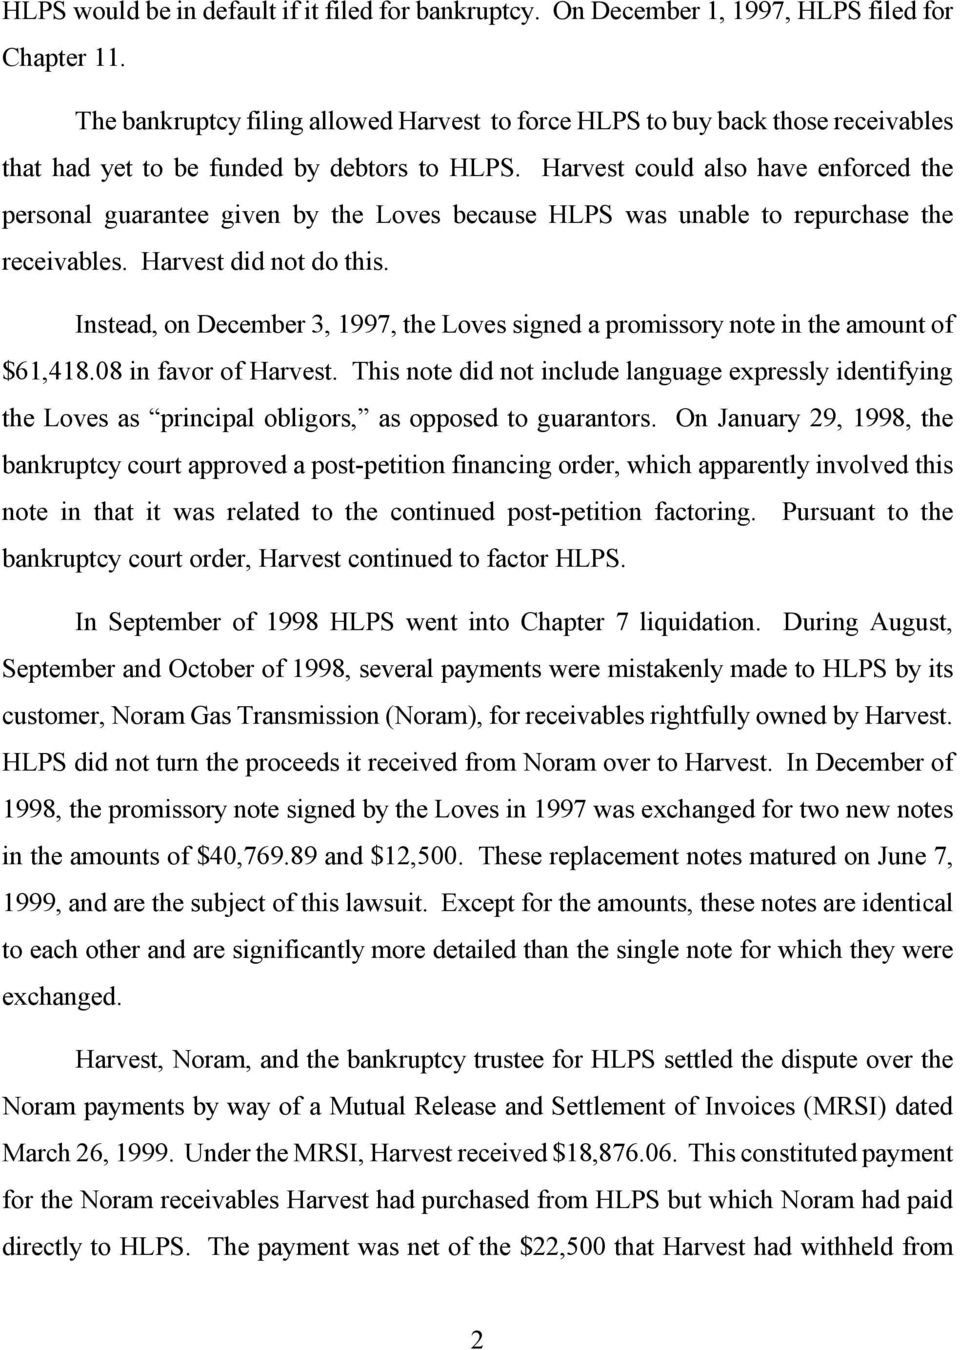 Harvest could also have enforced the personal guarantee given by the Loves because HLPS was unable to repurchase the receivables. Harvest did not do this.